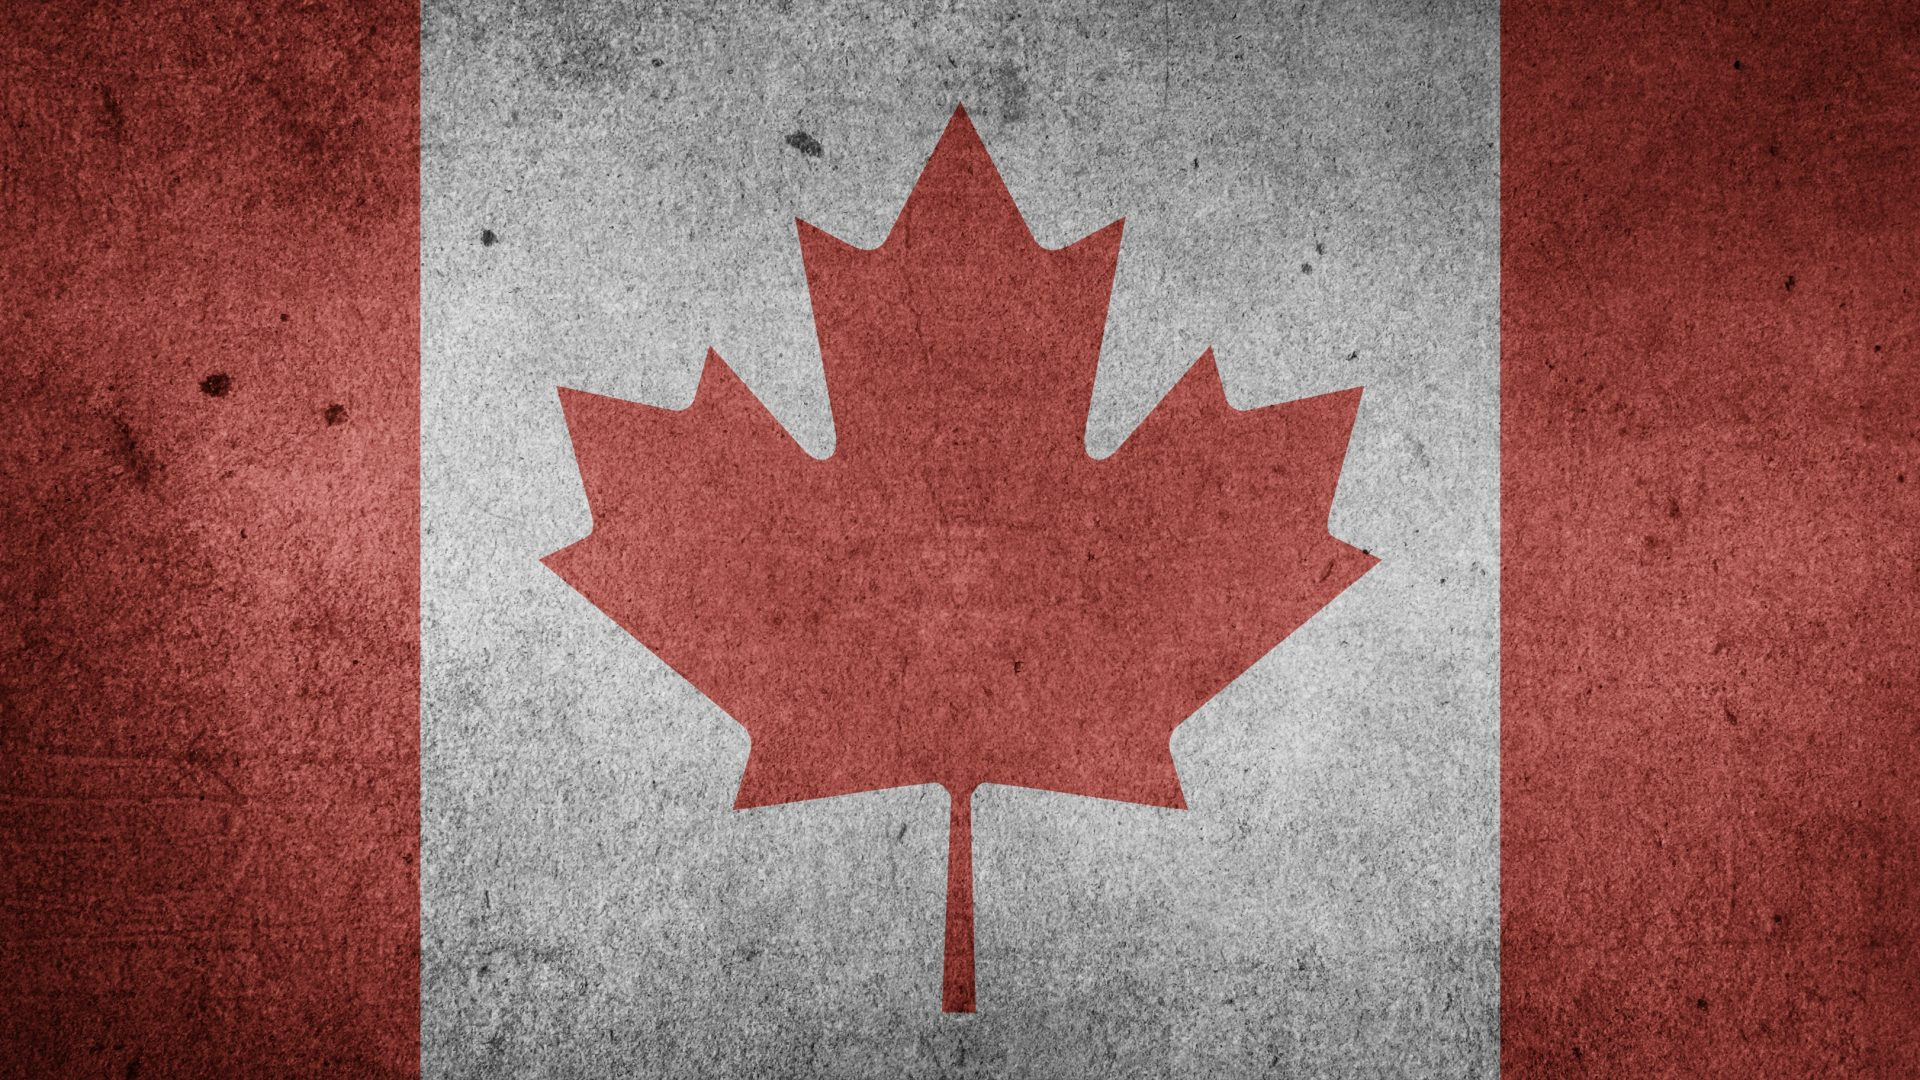 The Flag Of Canada Grunge Hd Wallpaper Wallpapers Gg